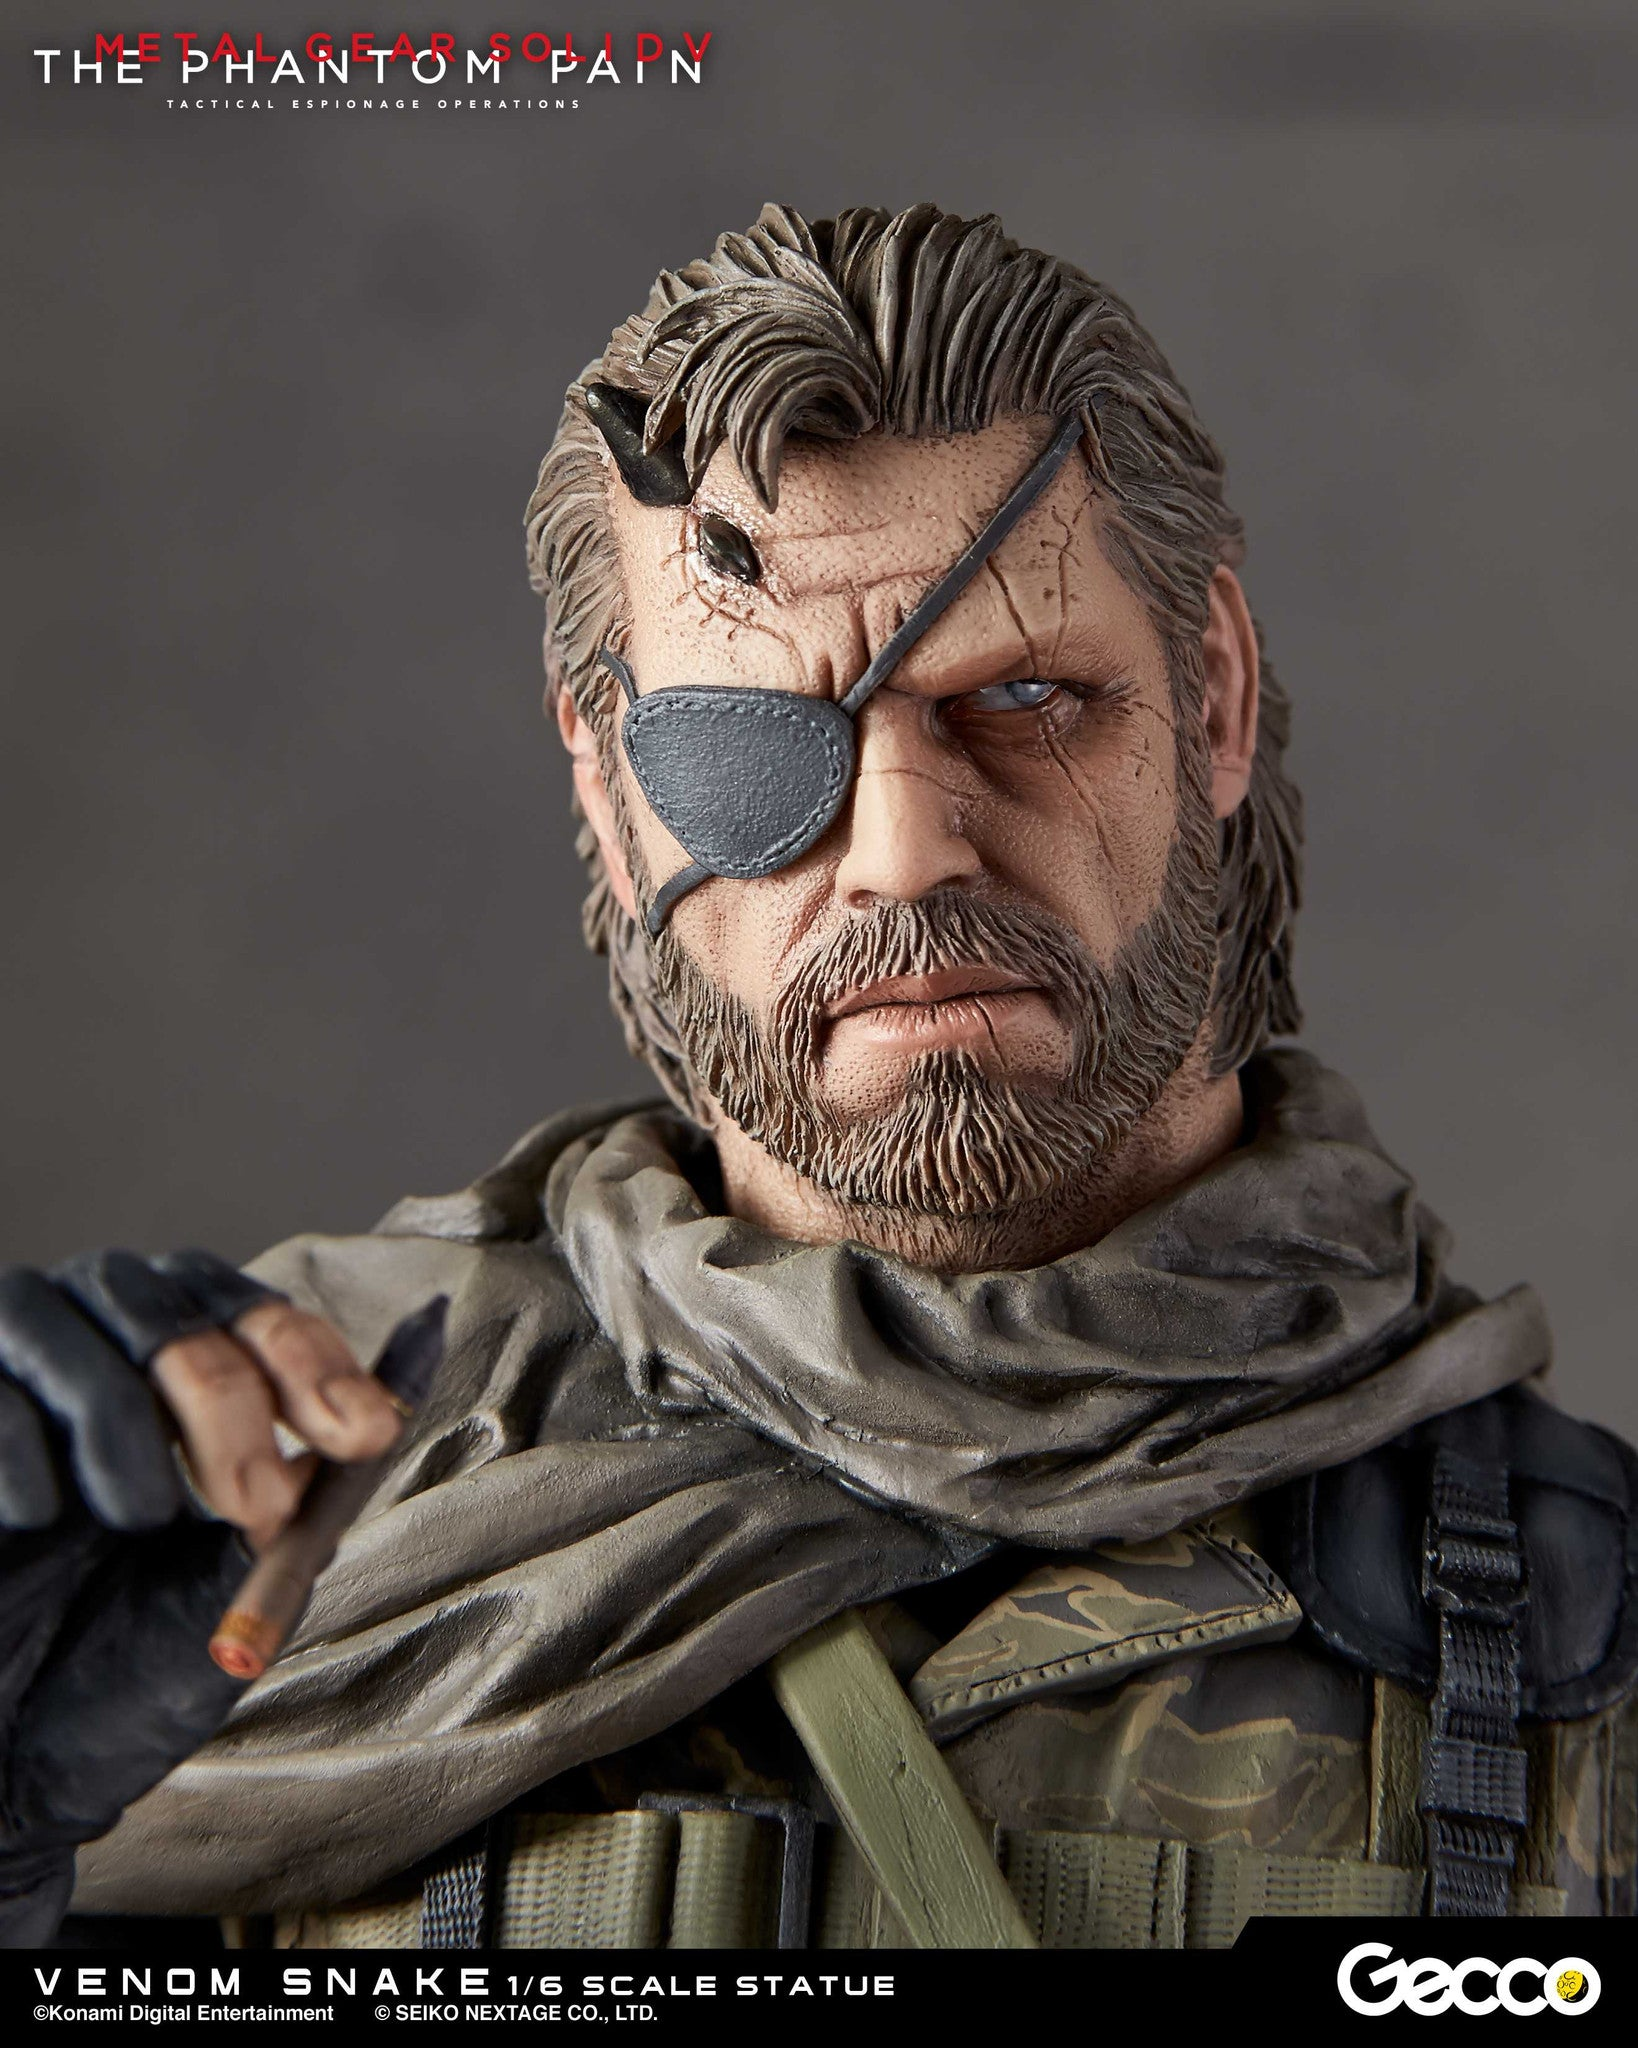 Gecco - Metal Gear Solid V: The Phantom Pain - Venom Snake 1/6 Scale Statue - Marvelous Toys - 13